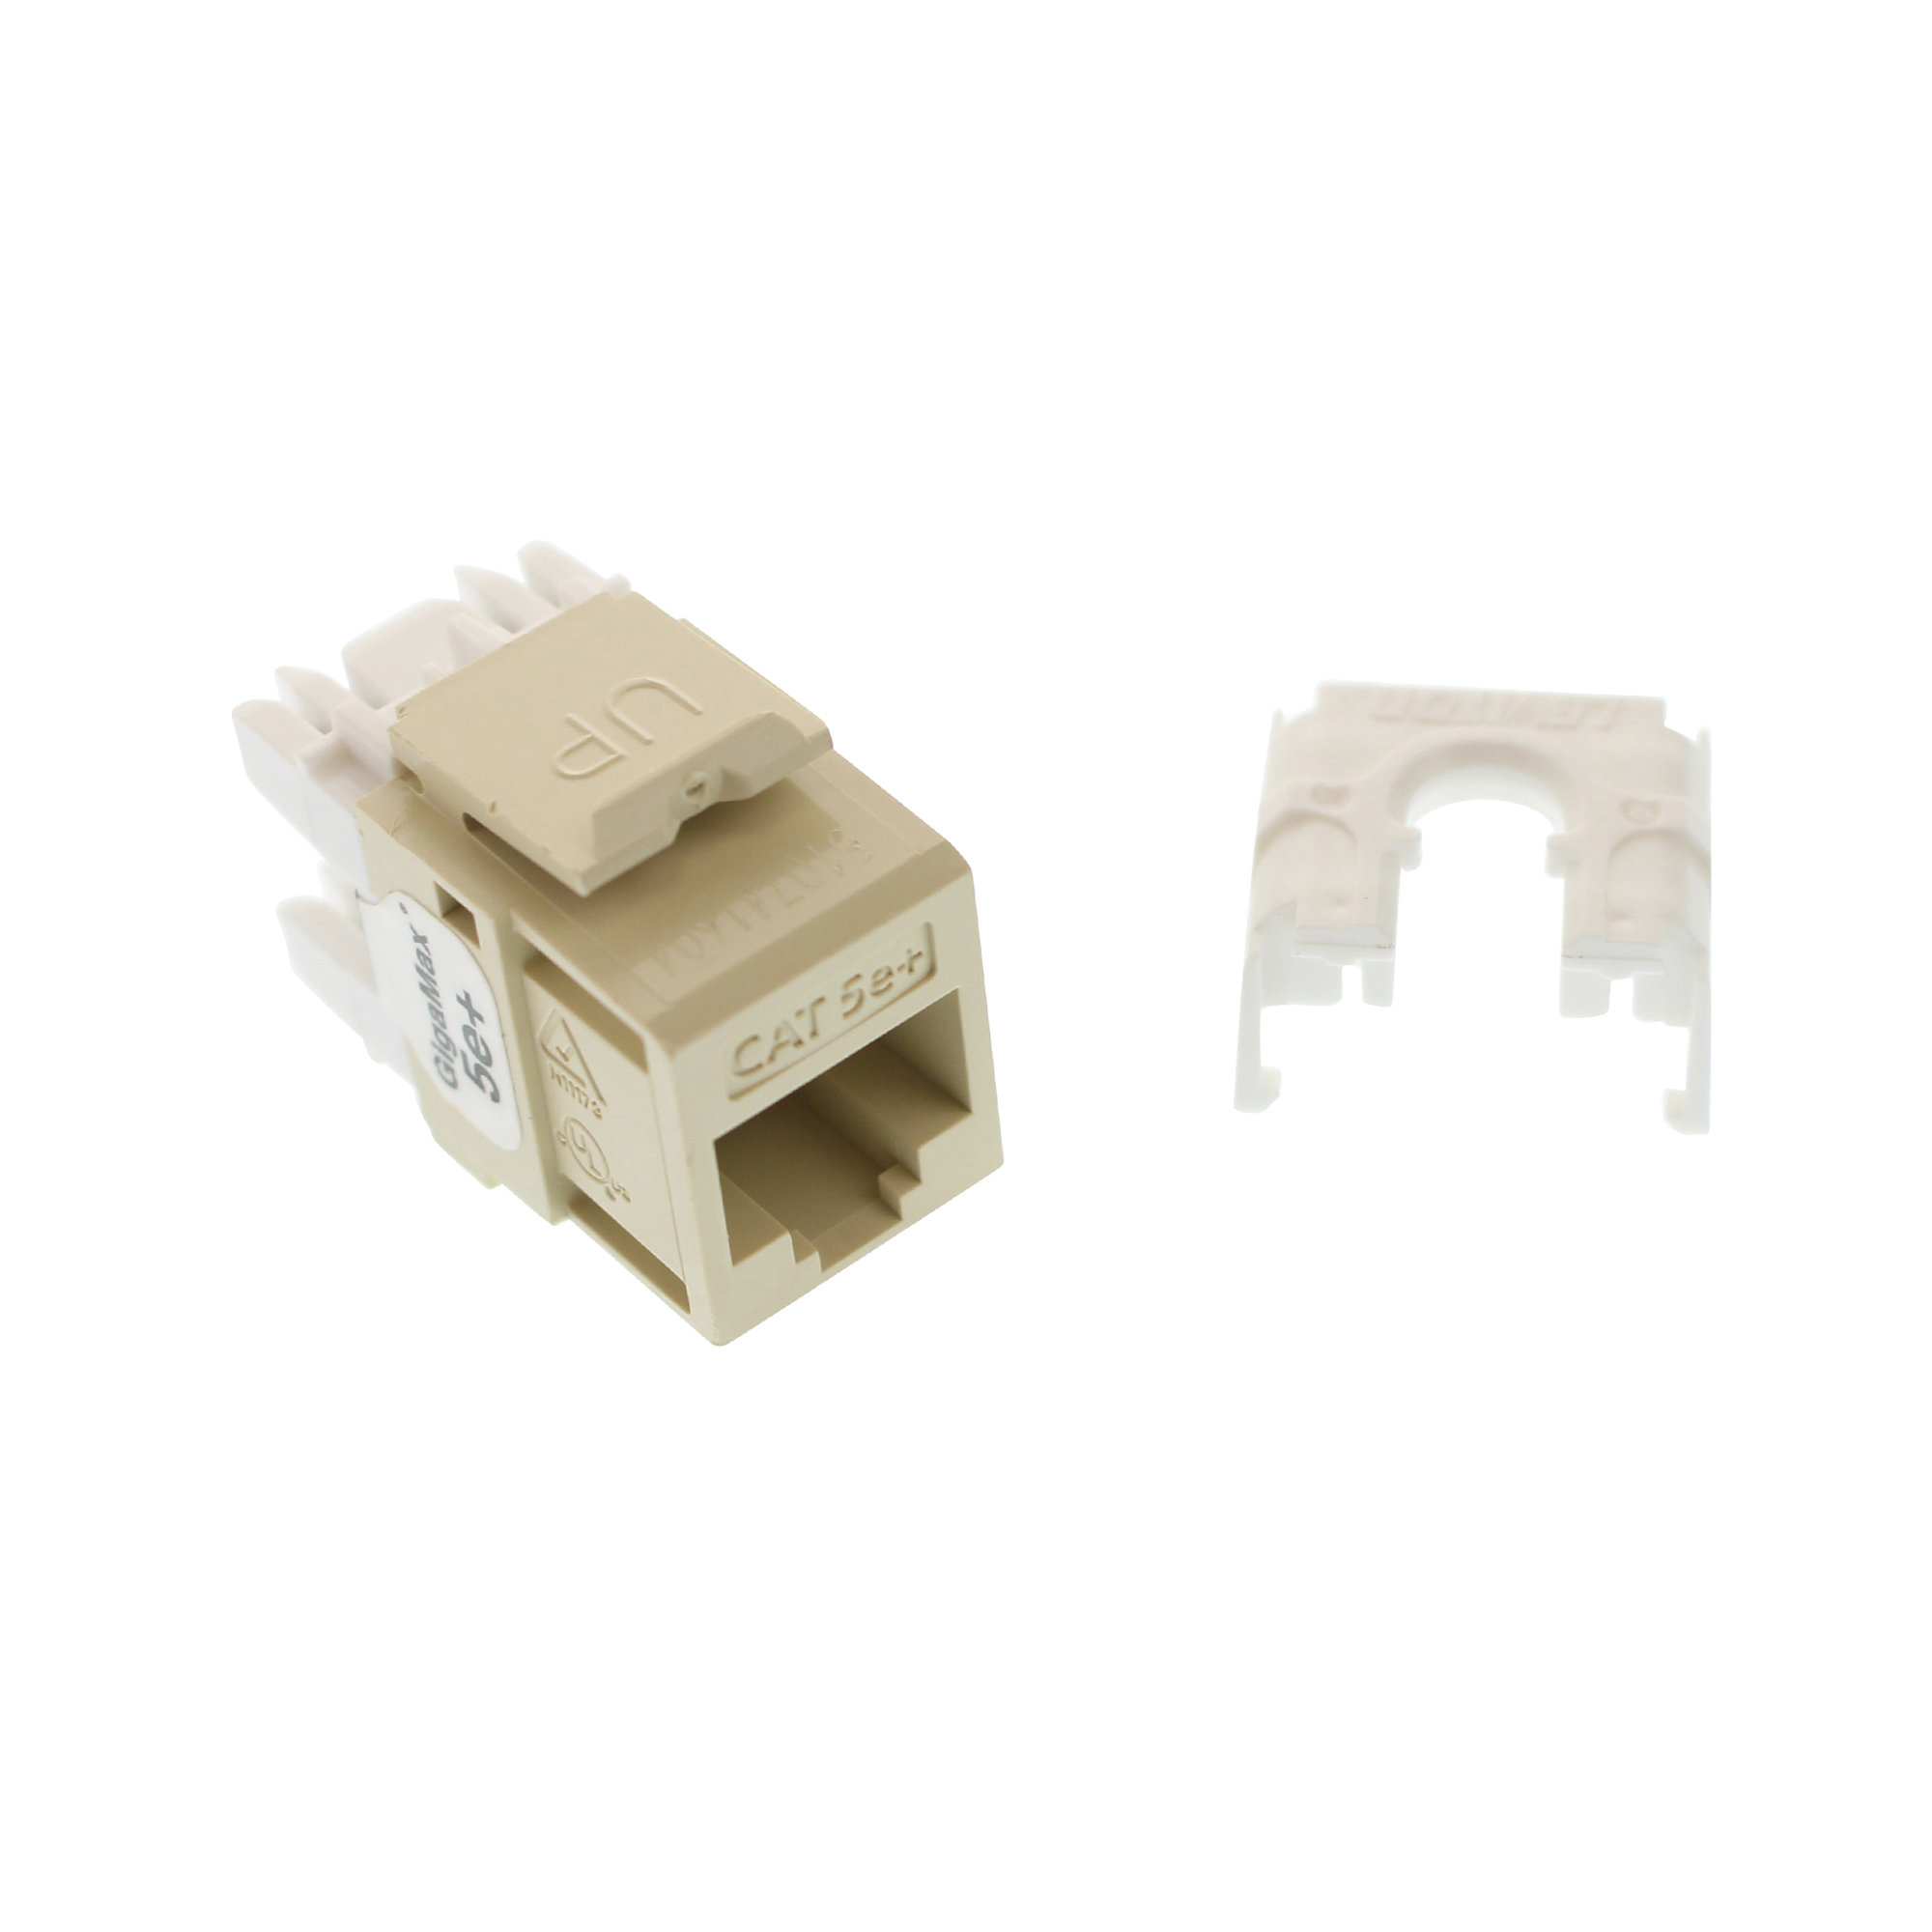 THIS AUCTION IS FOR 1 LEVITON 5G110 RI5 GIGAMAX 5E QIUCKPORT CONNECTOR CAT5E JACK